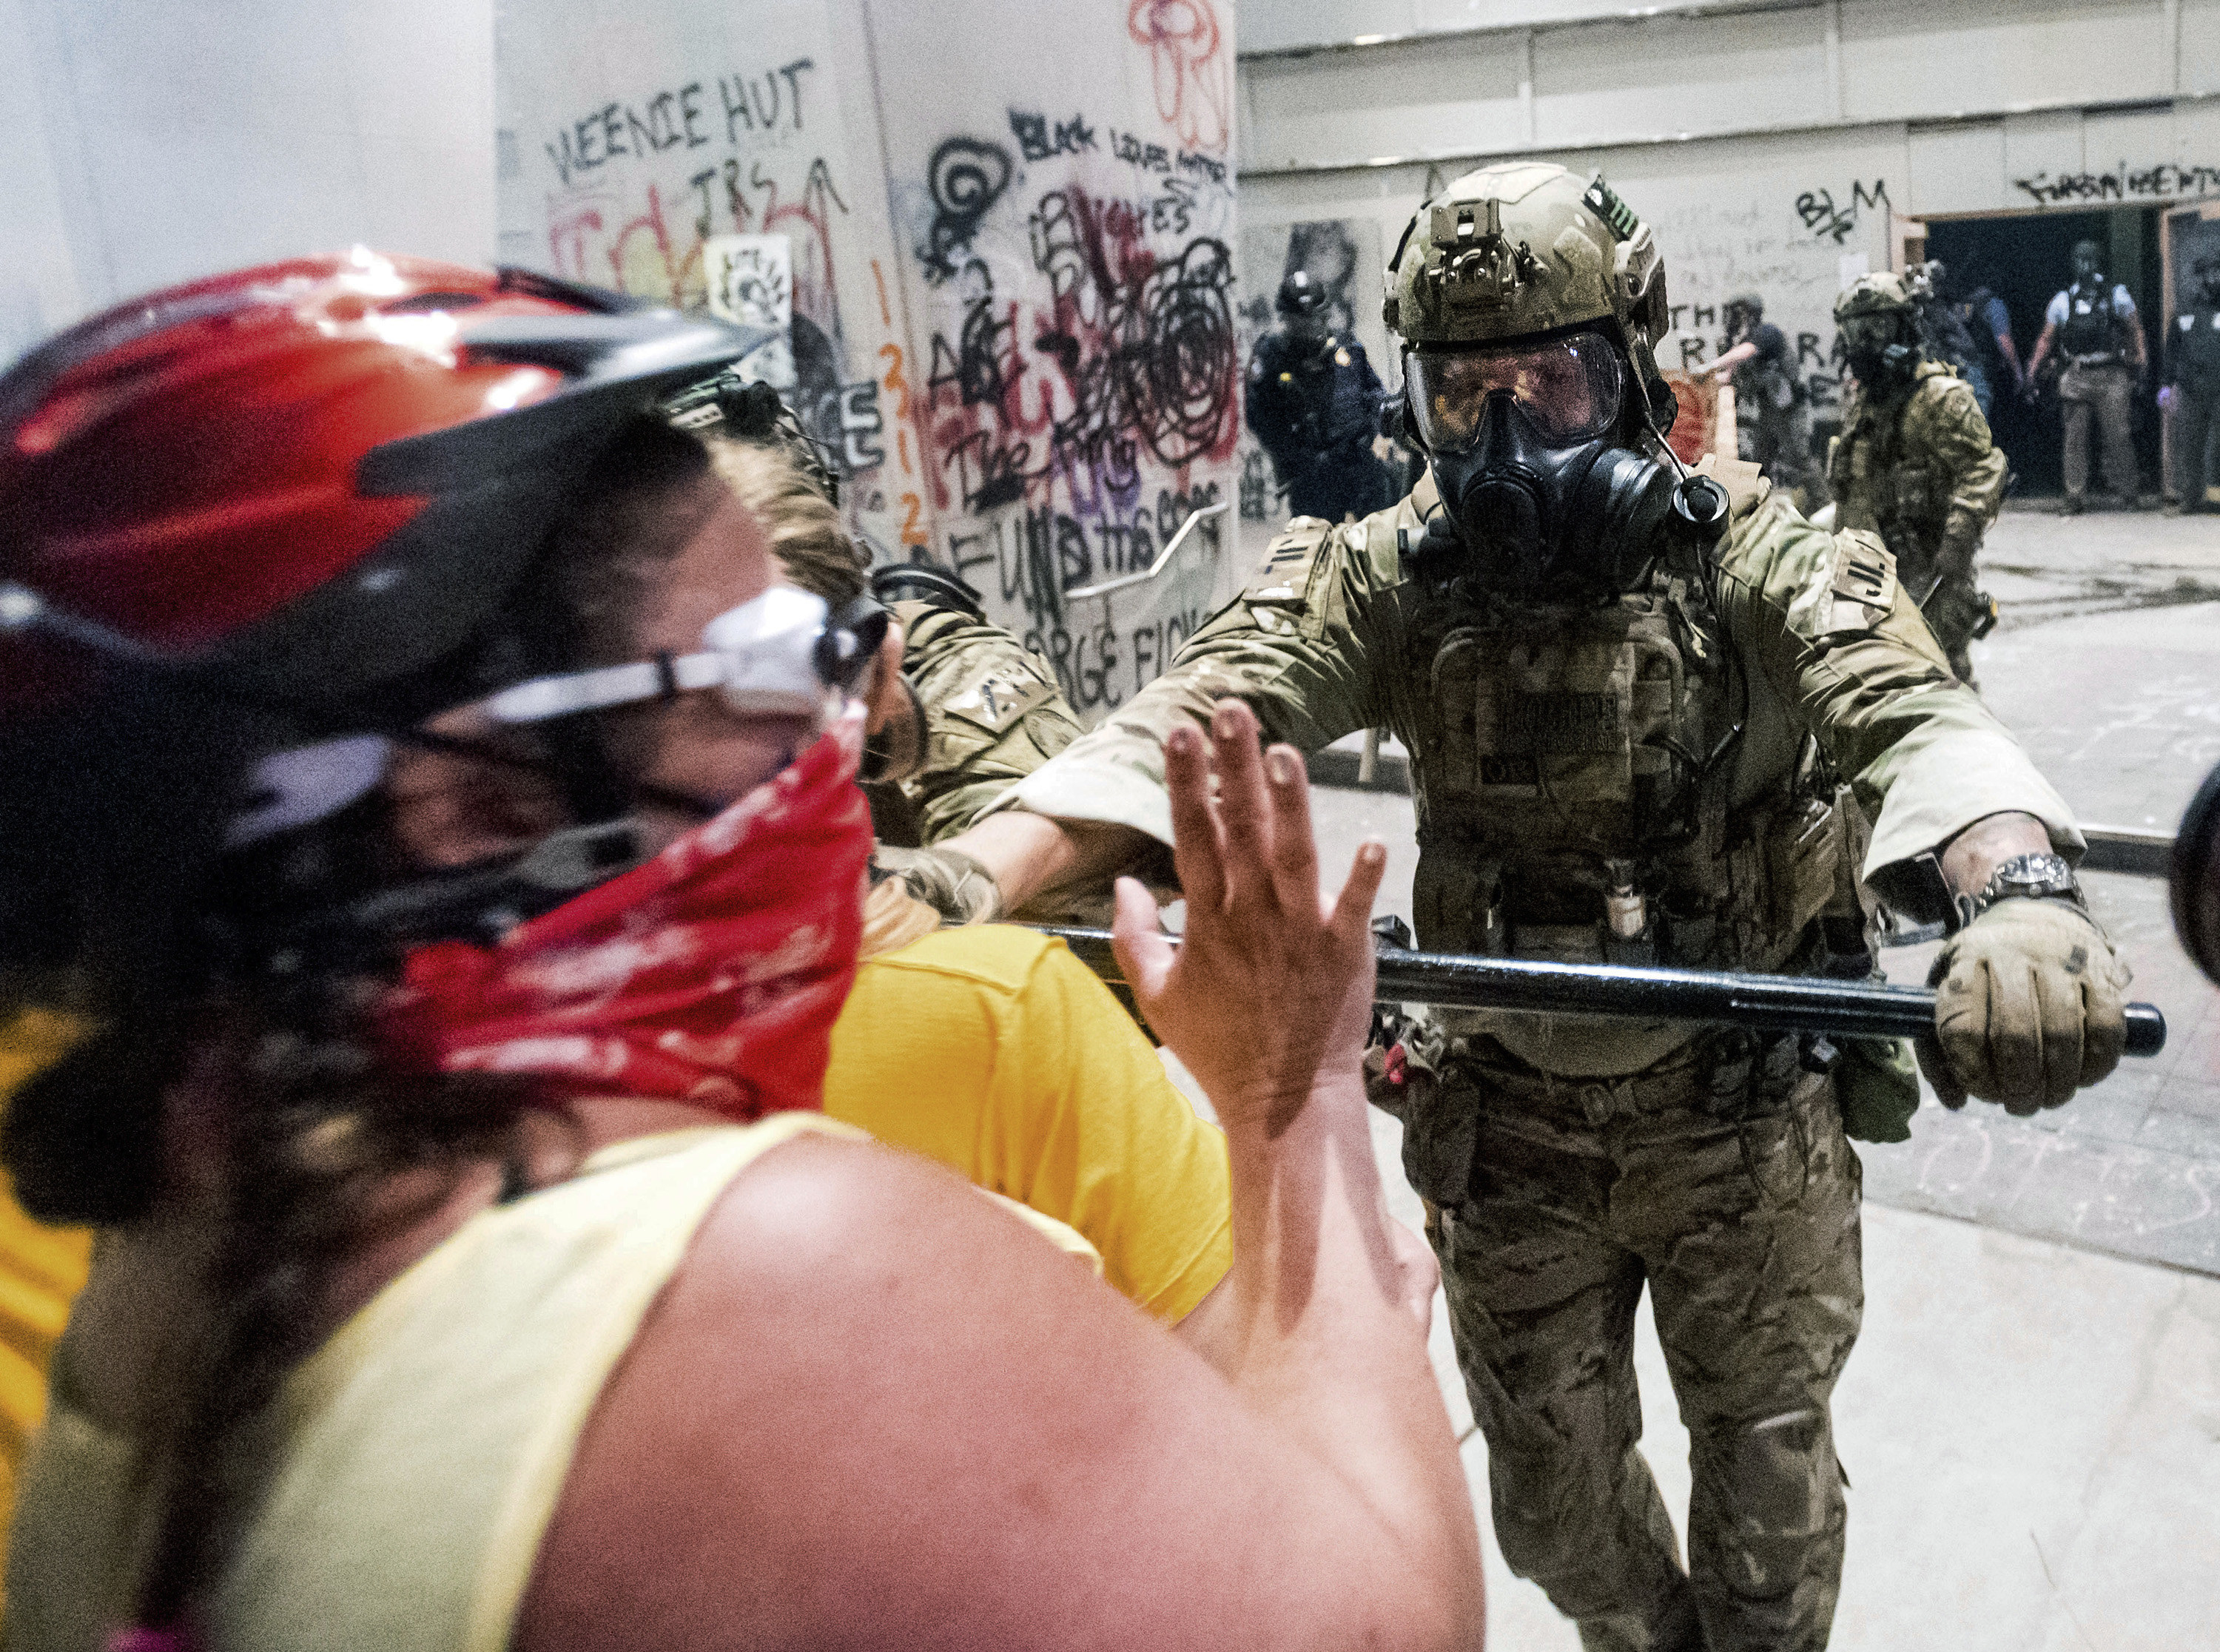 A federal officer in camouflage, a helmet, and gas mask uses a baton to push back women wearing matching yellow shirts